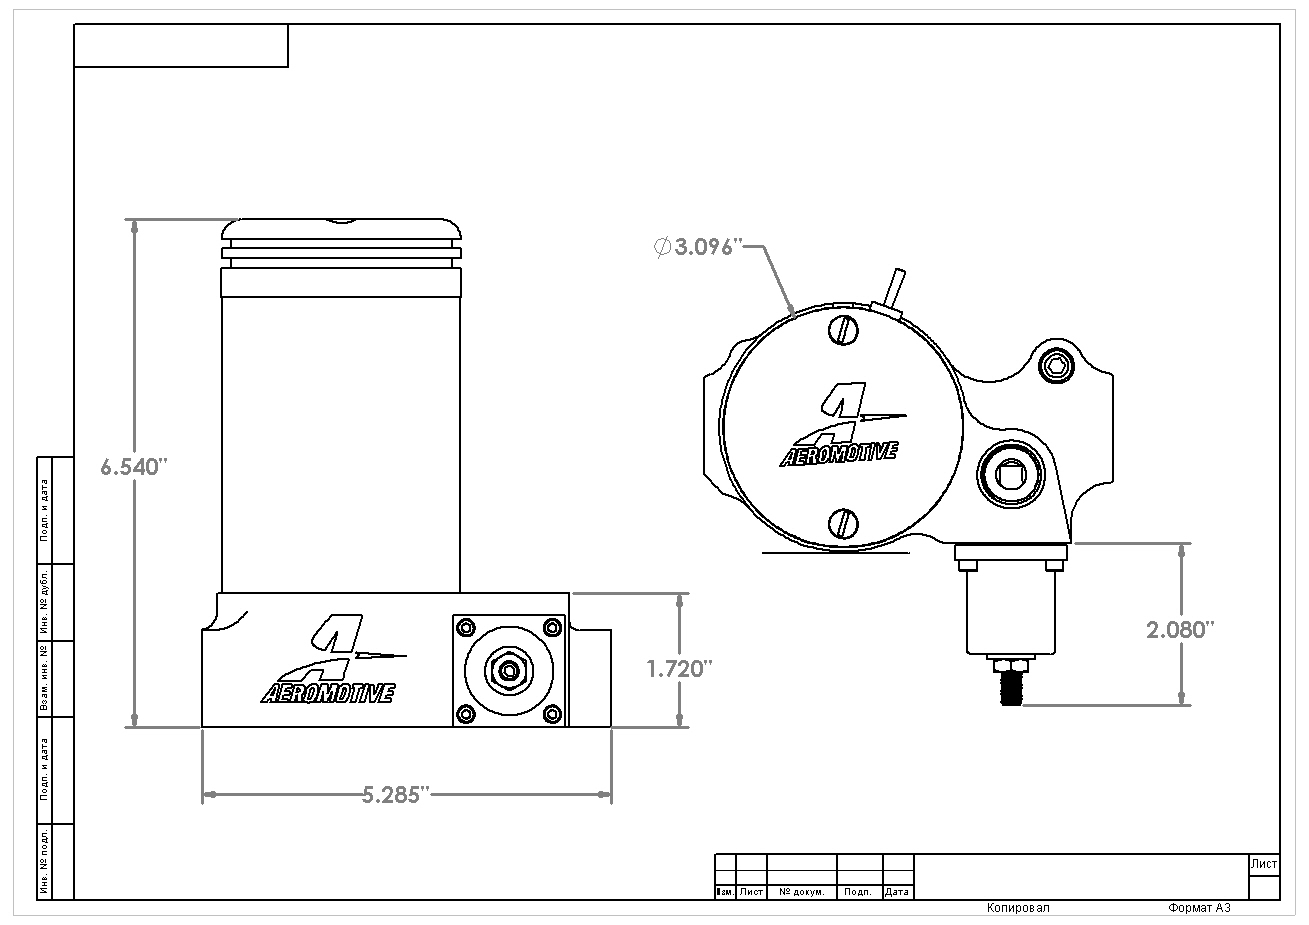 hight resolution of a2000 carbureted fuel pump